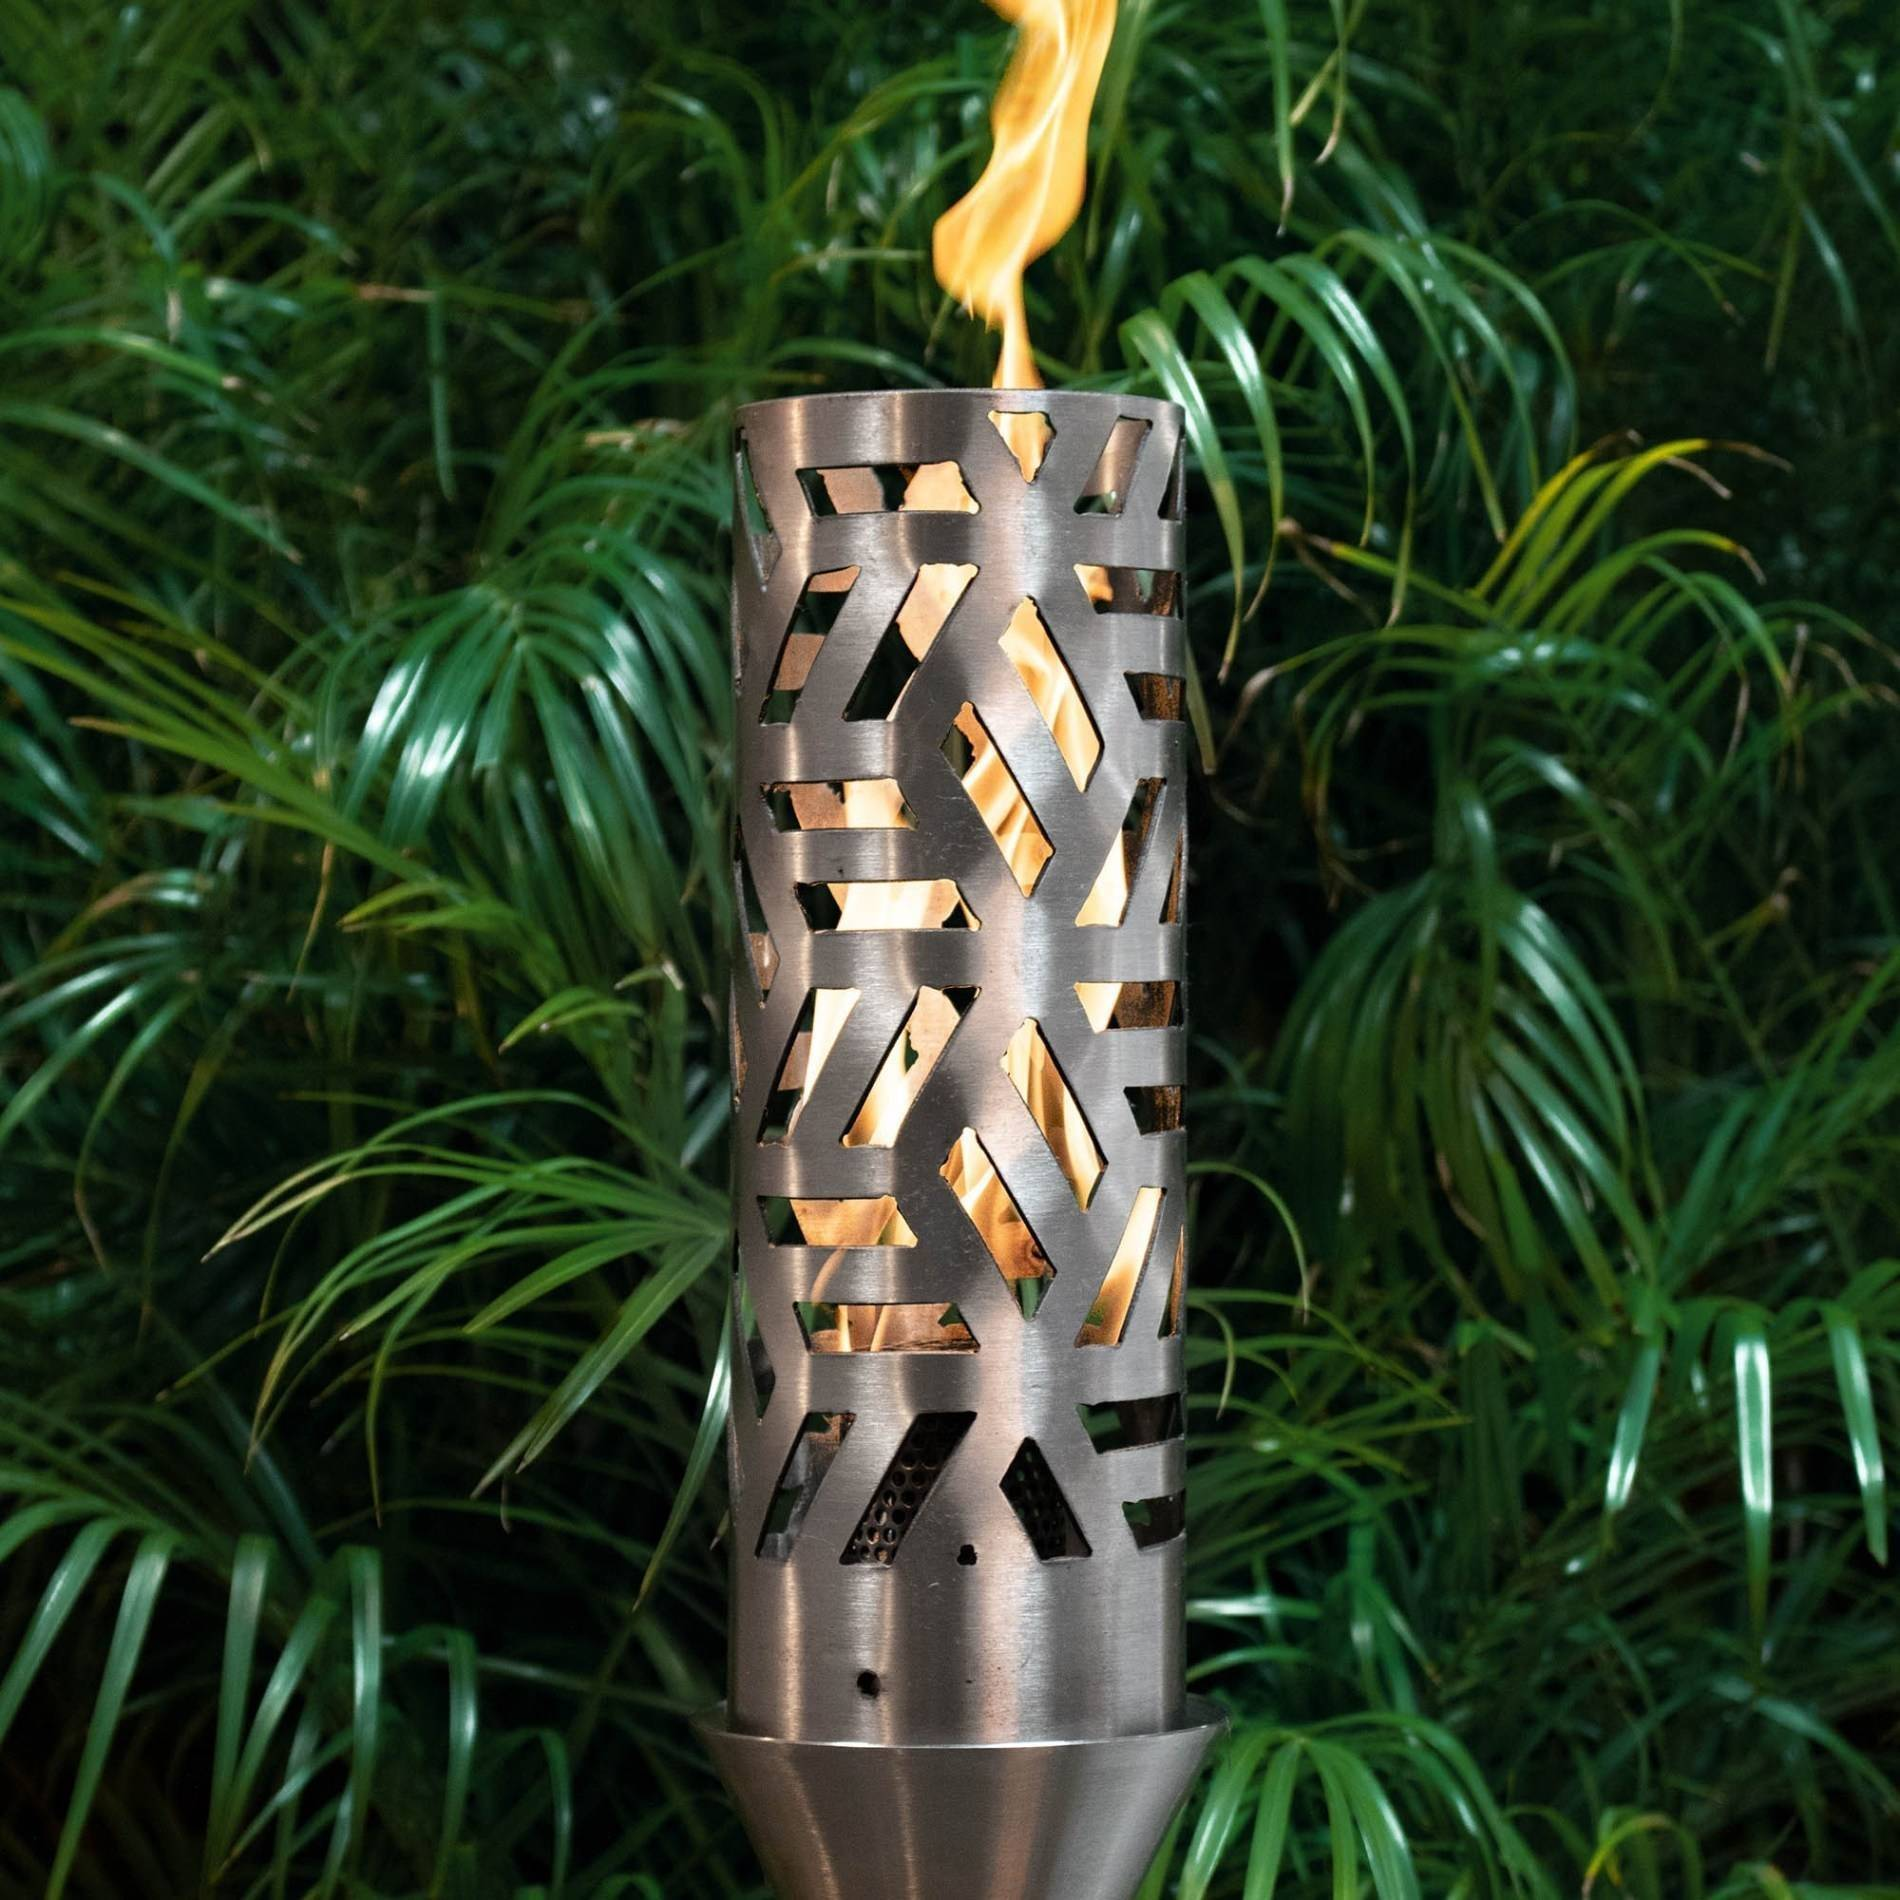 Cubist Gas Tiki Torch